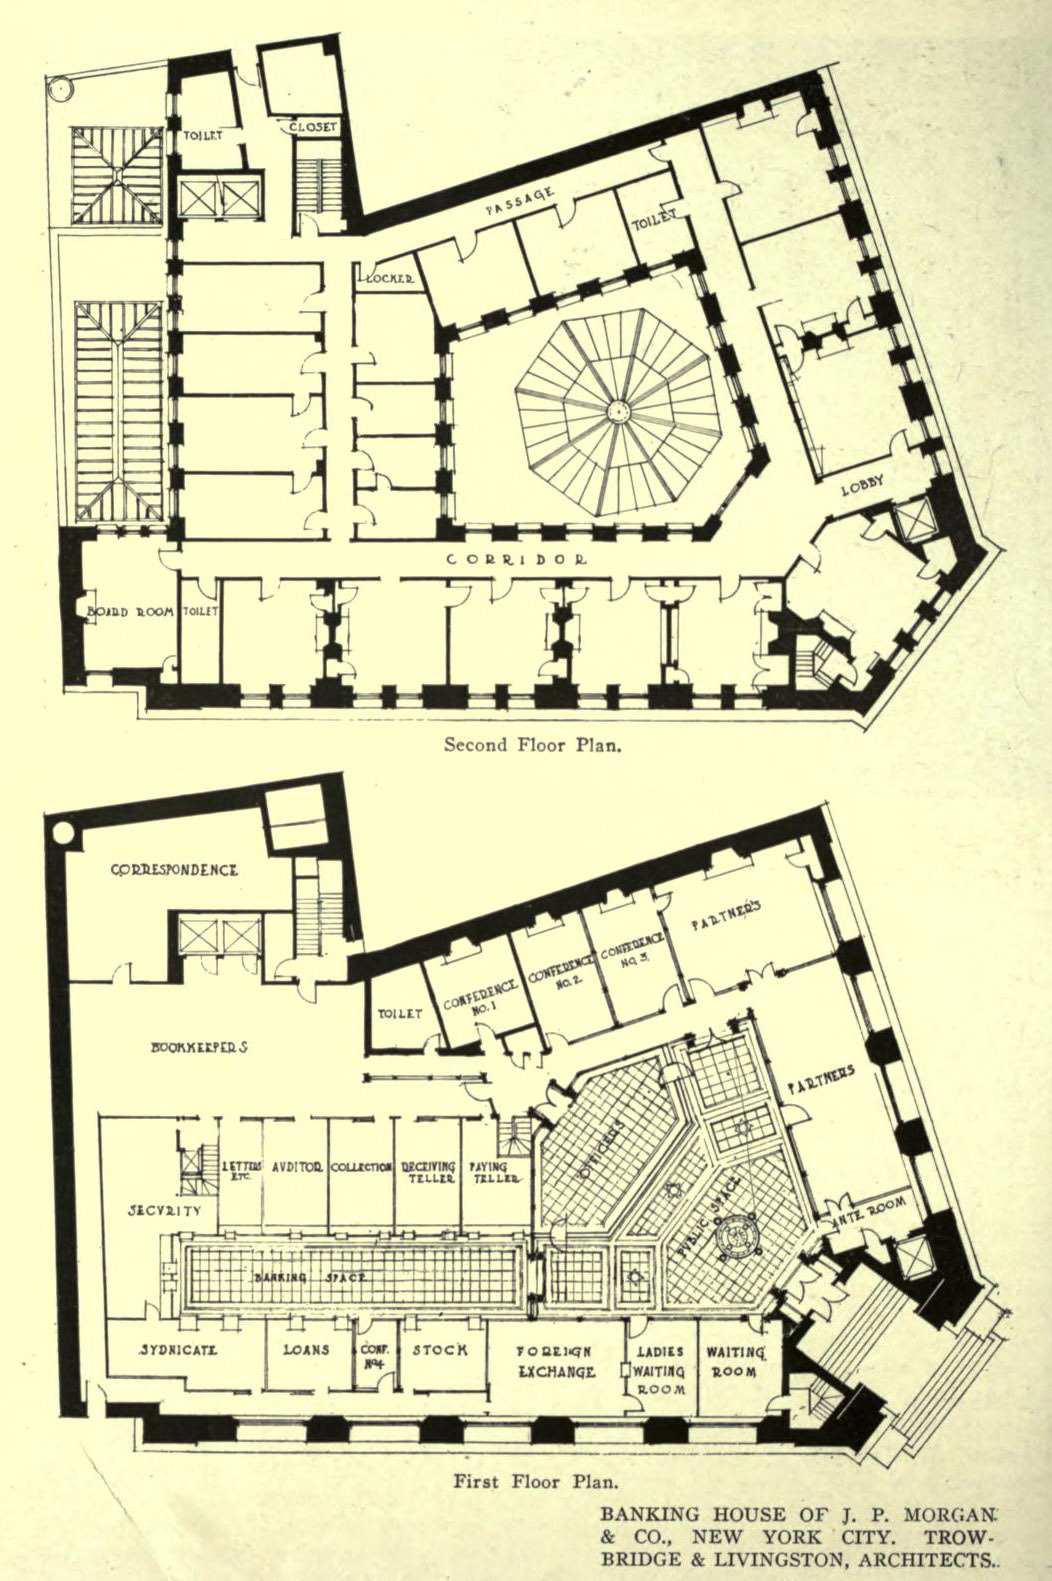 Floorplans of the banking house of J. P. Morgan & Co., New York City